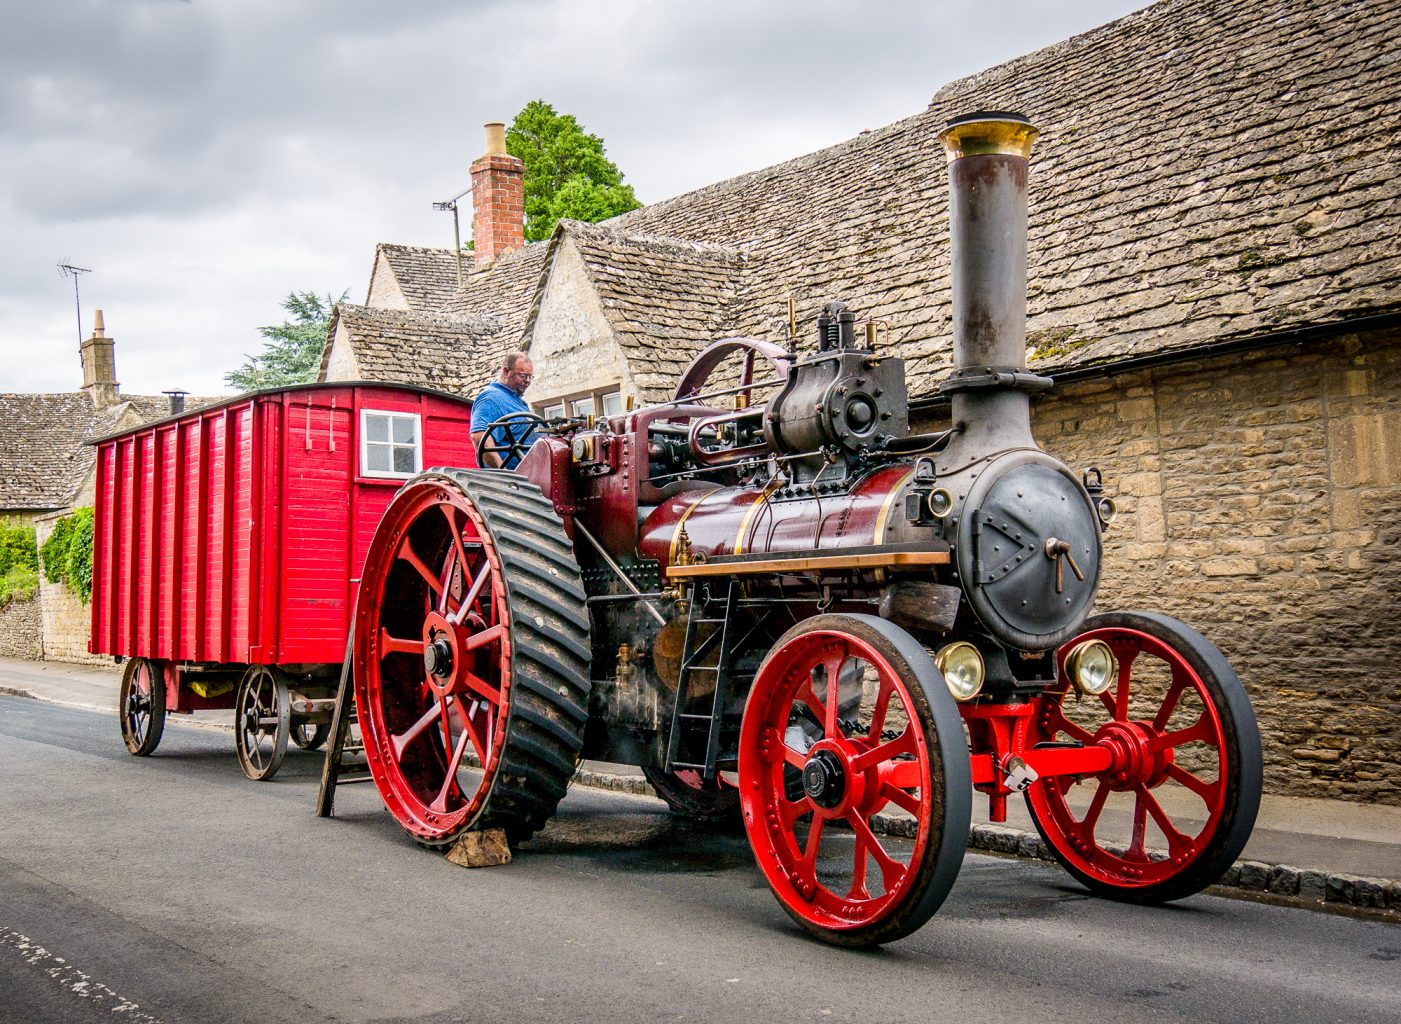 Finding passion - Steam engine and trailer